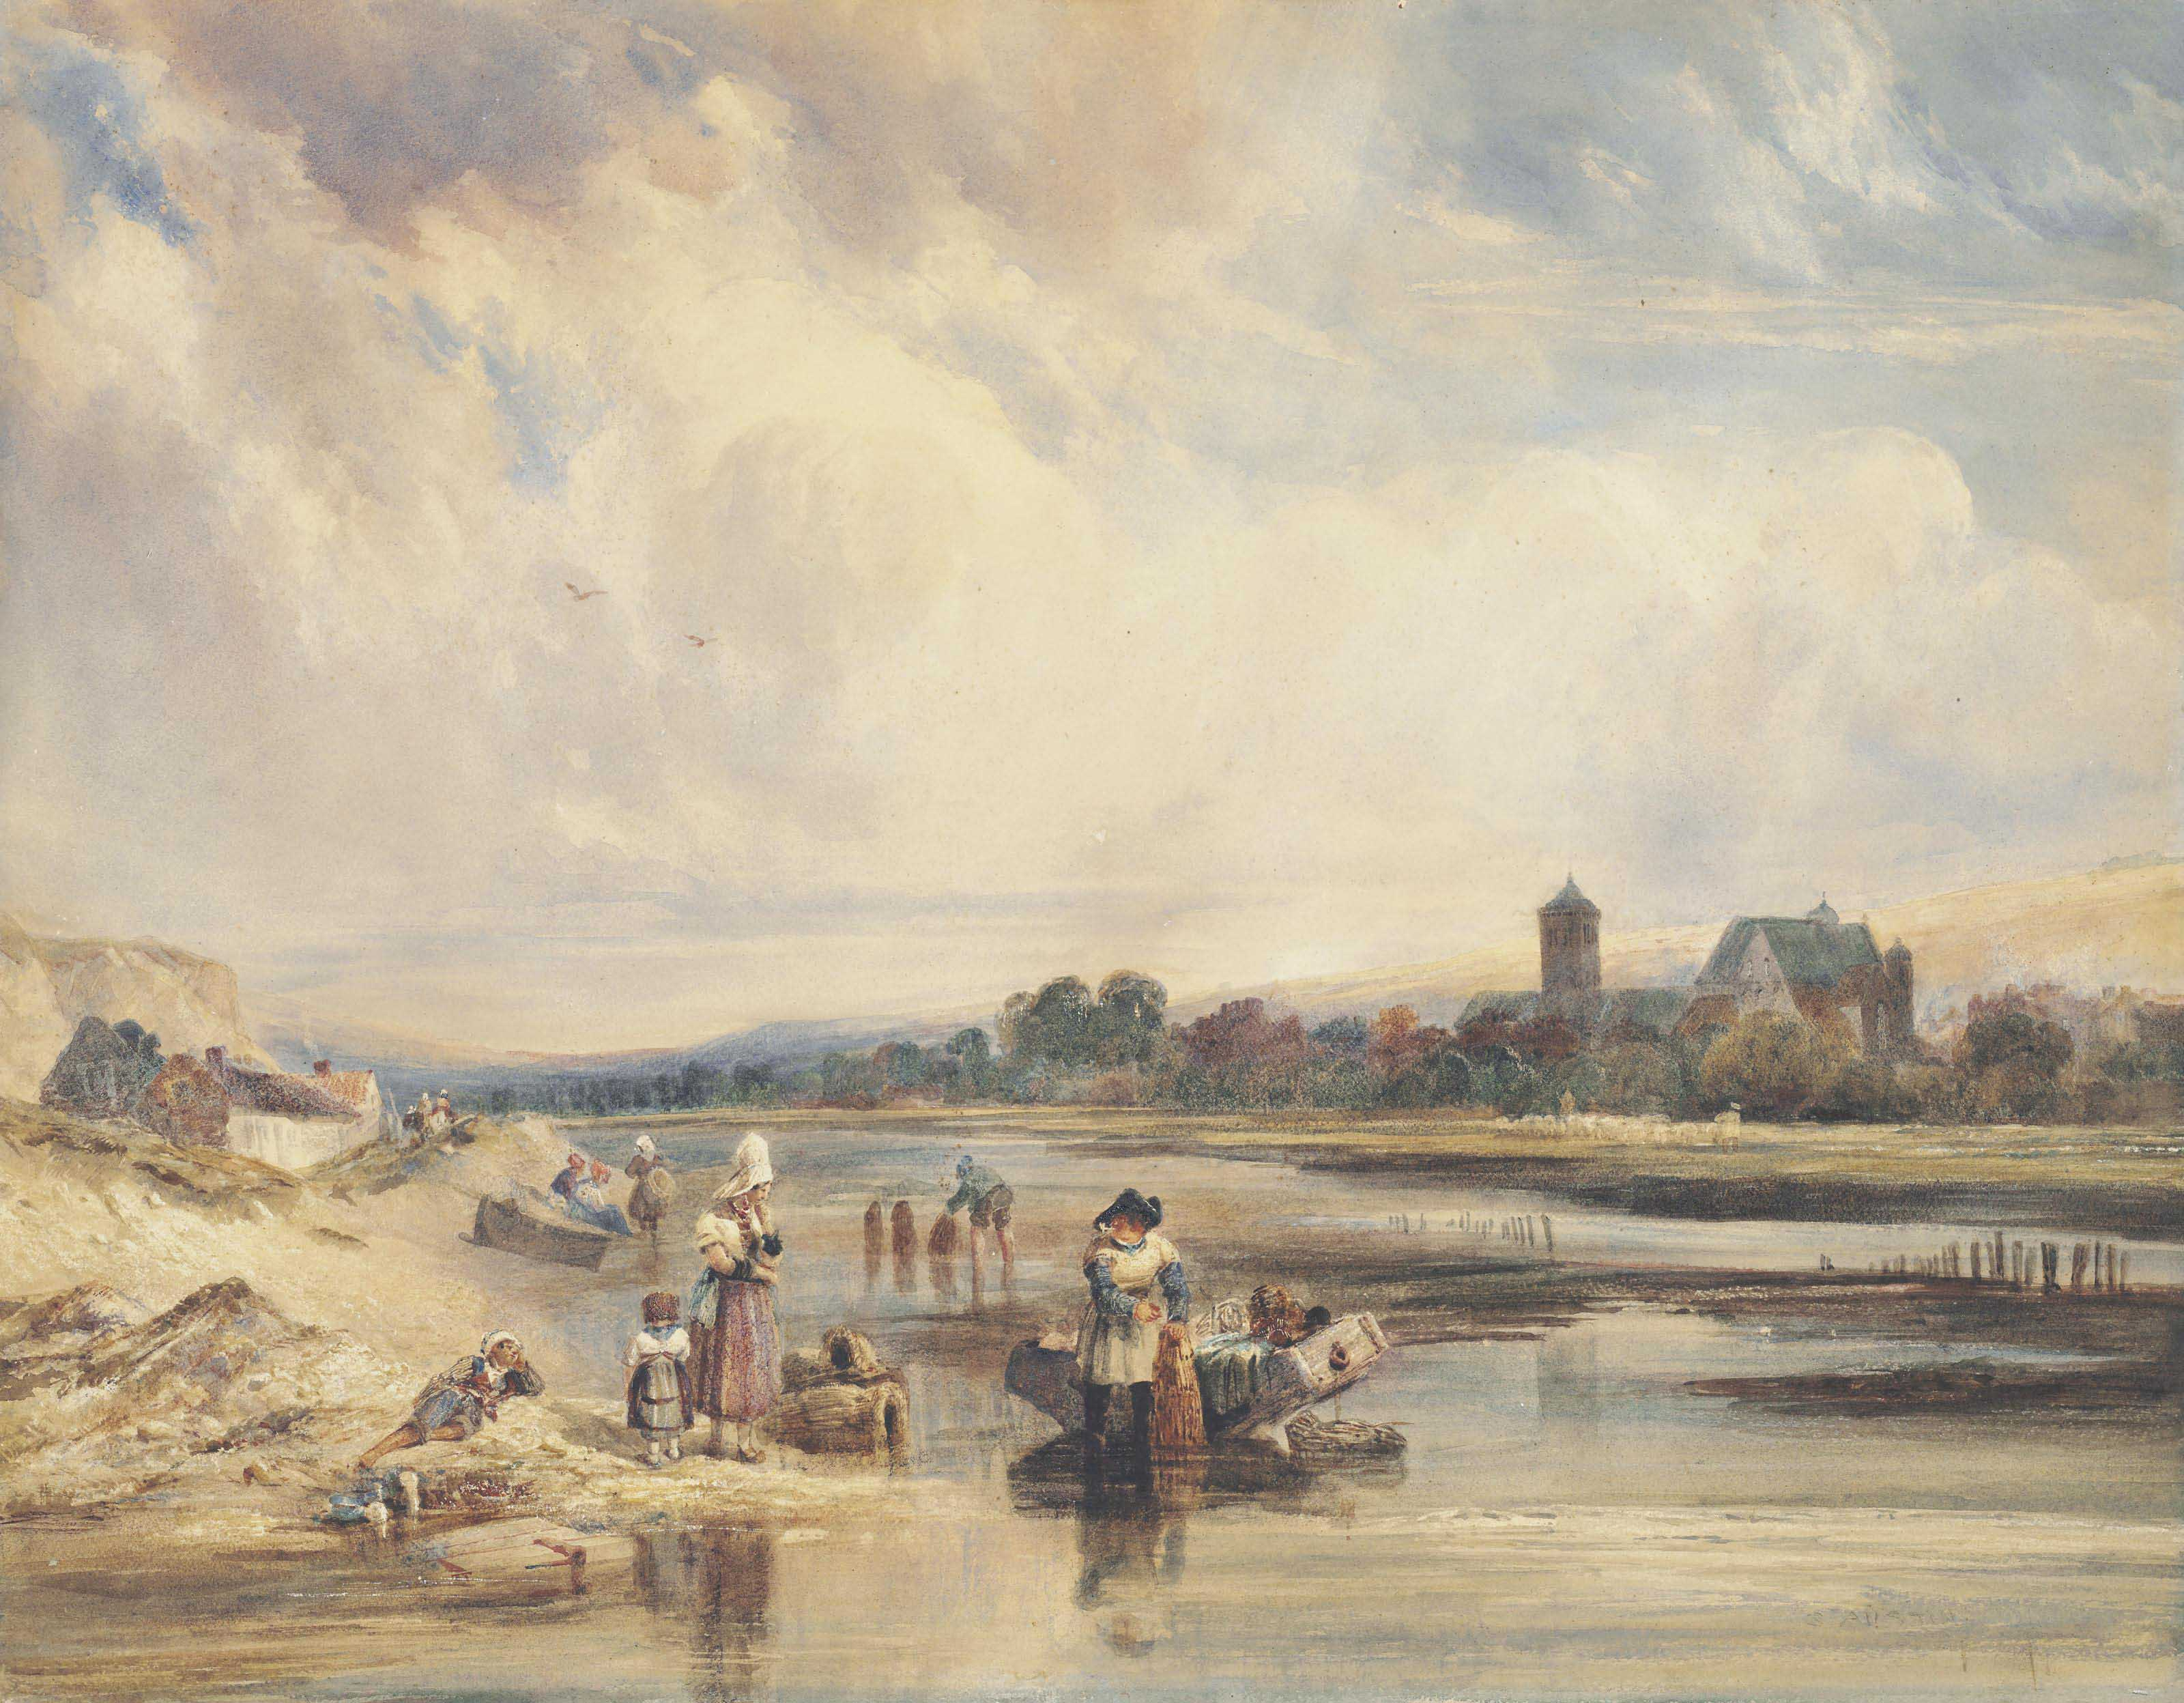 Figures on a riverbank checking eel traps